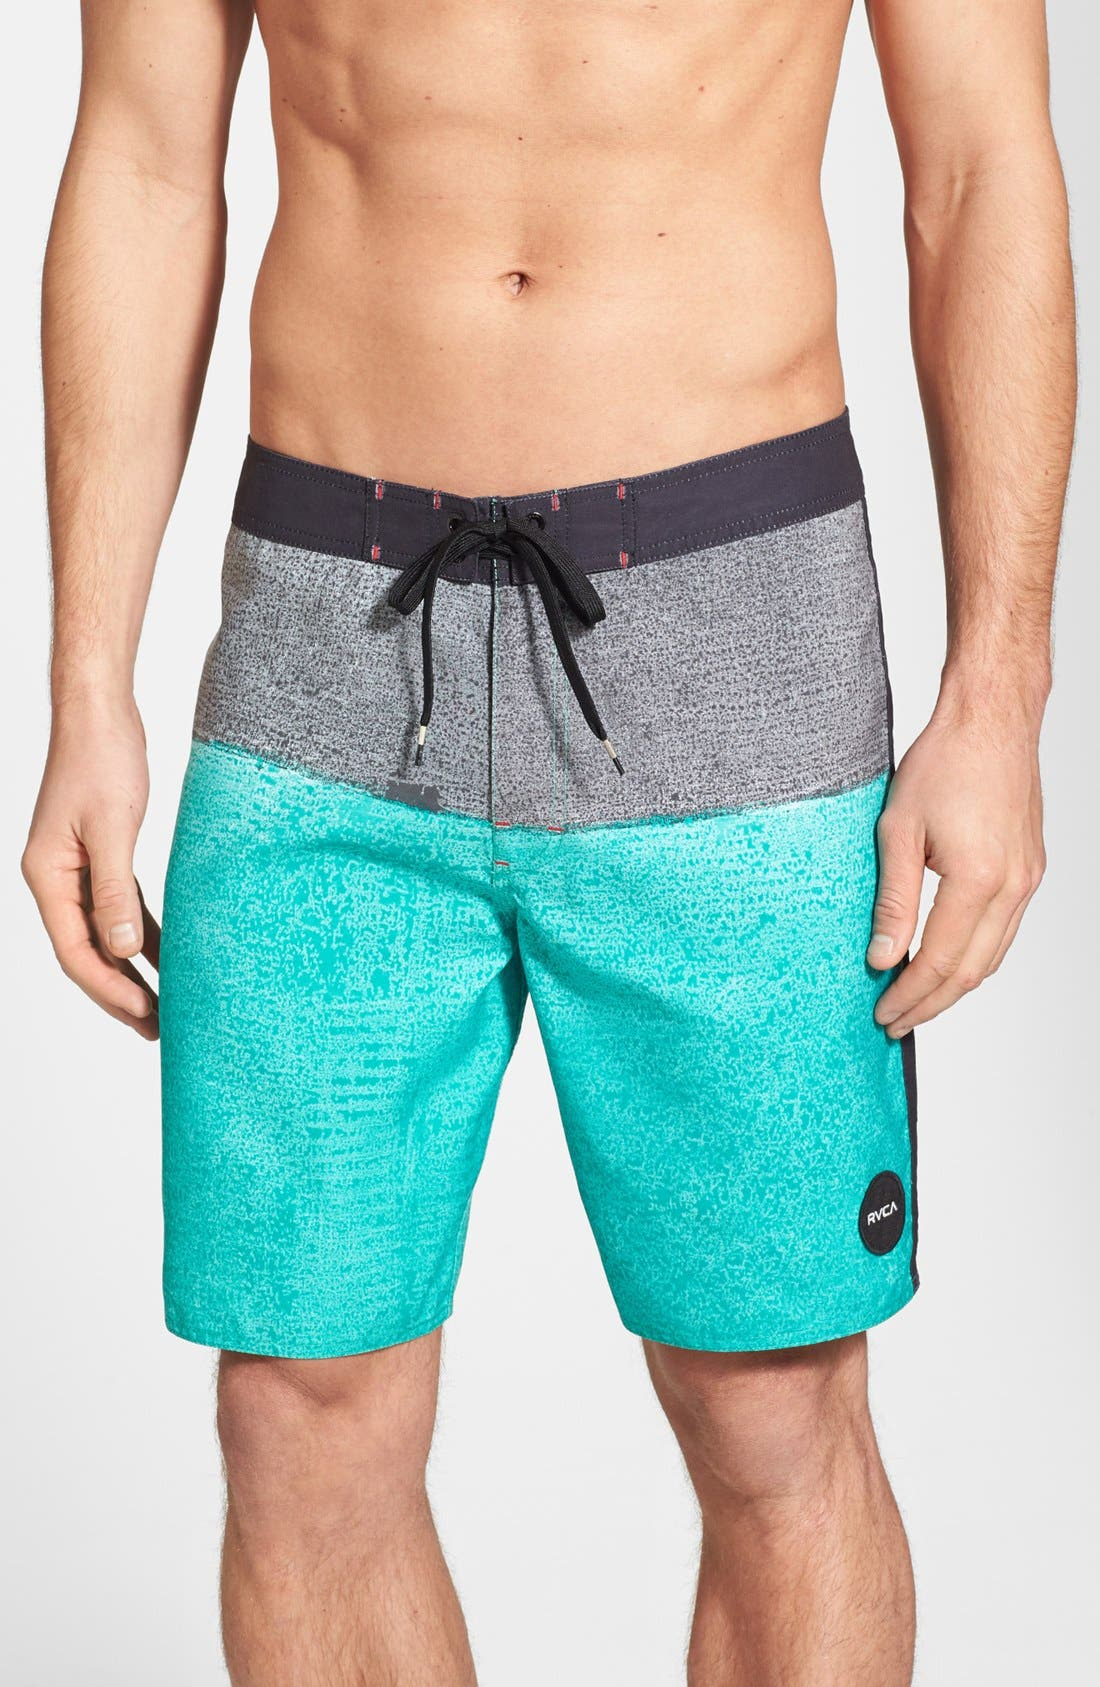 Alternate Image 1 Selected - RVCA 'Buoy' Board Shorts